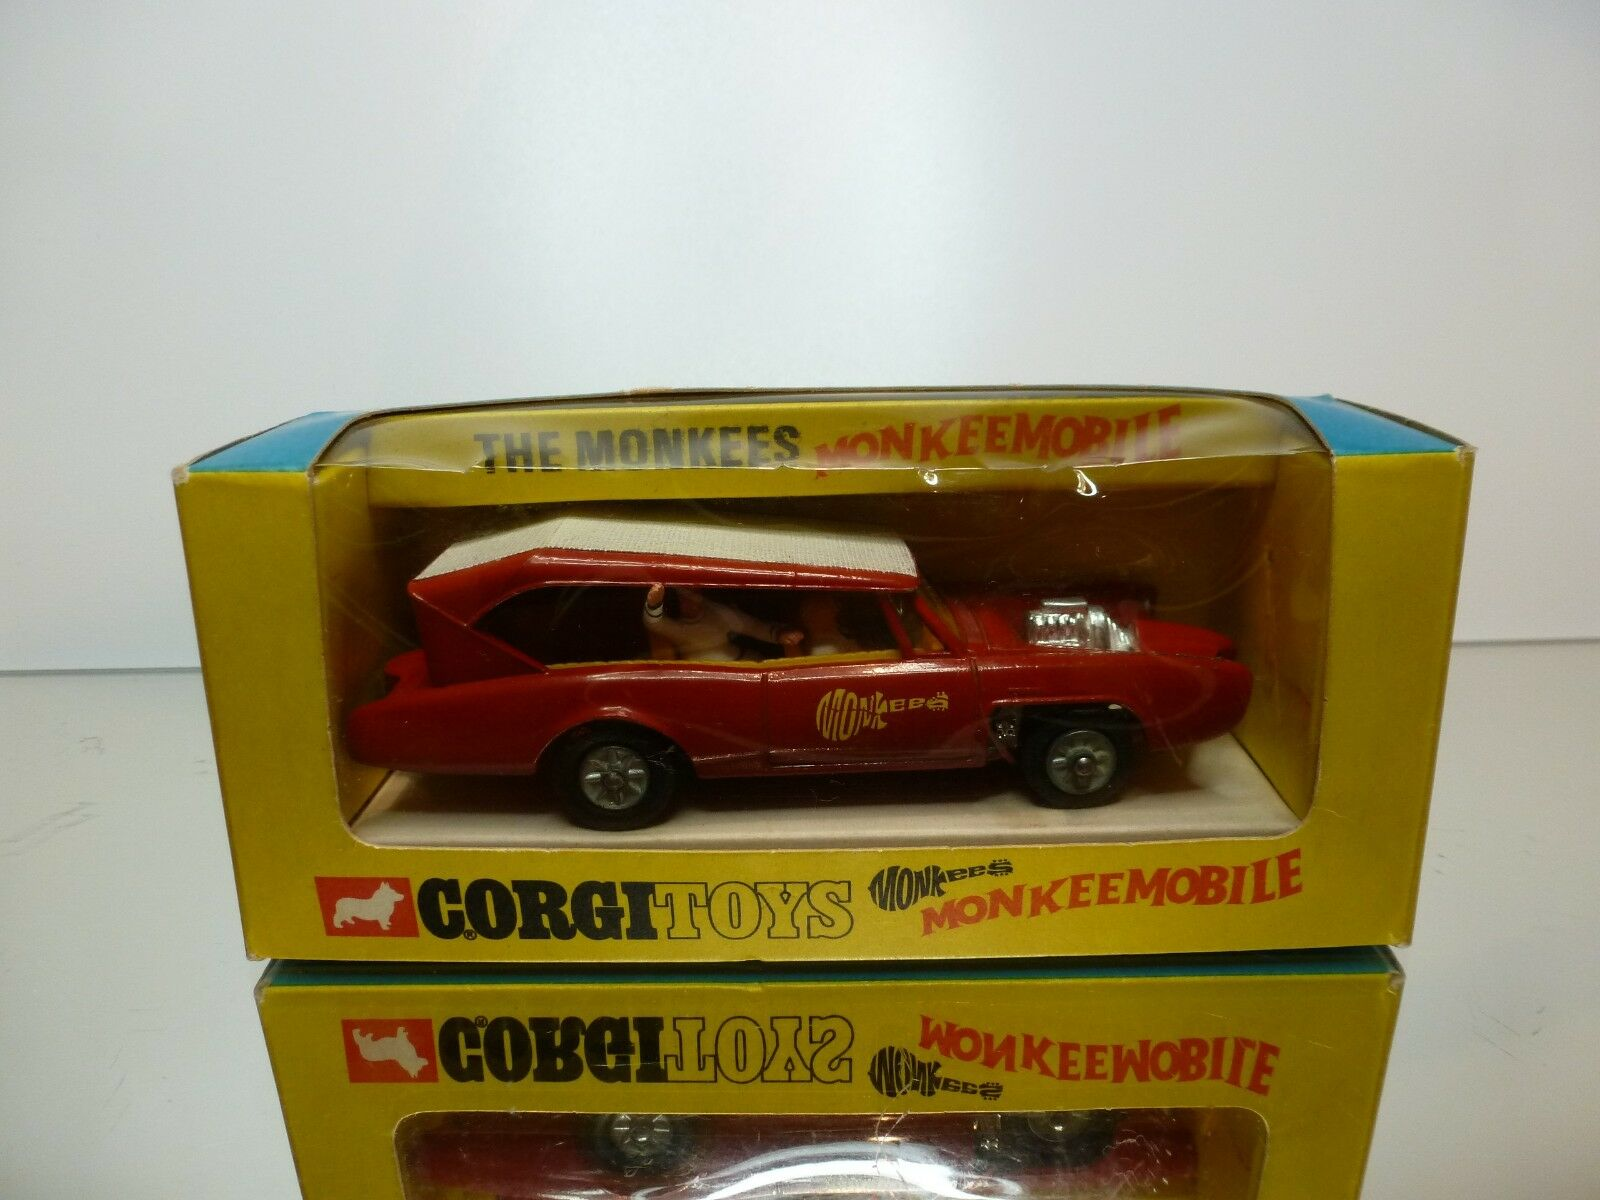 CORGI TOYS 277 MONKEEMOBILE - THE MONKEES  - RED 1 43 RARE - VERY GOOD IN BOX